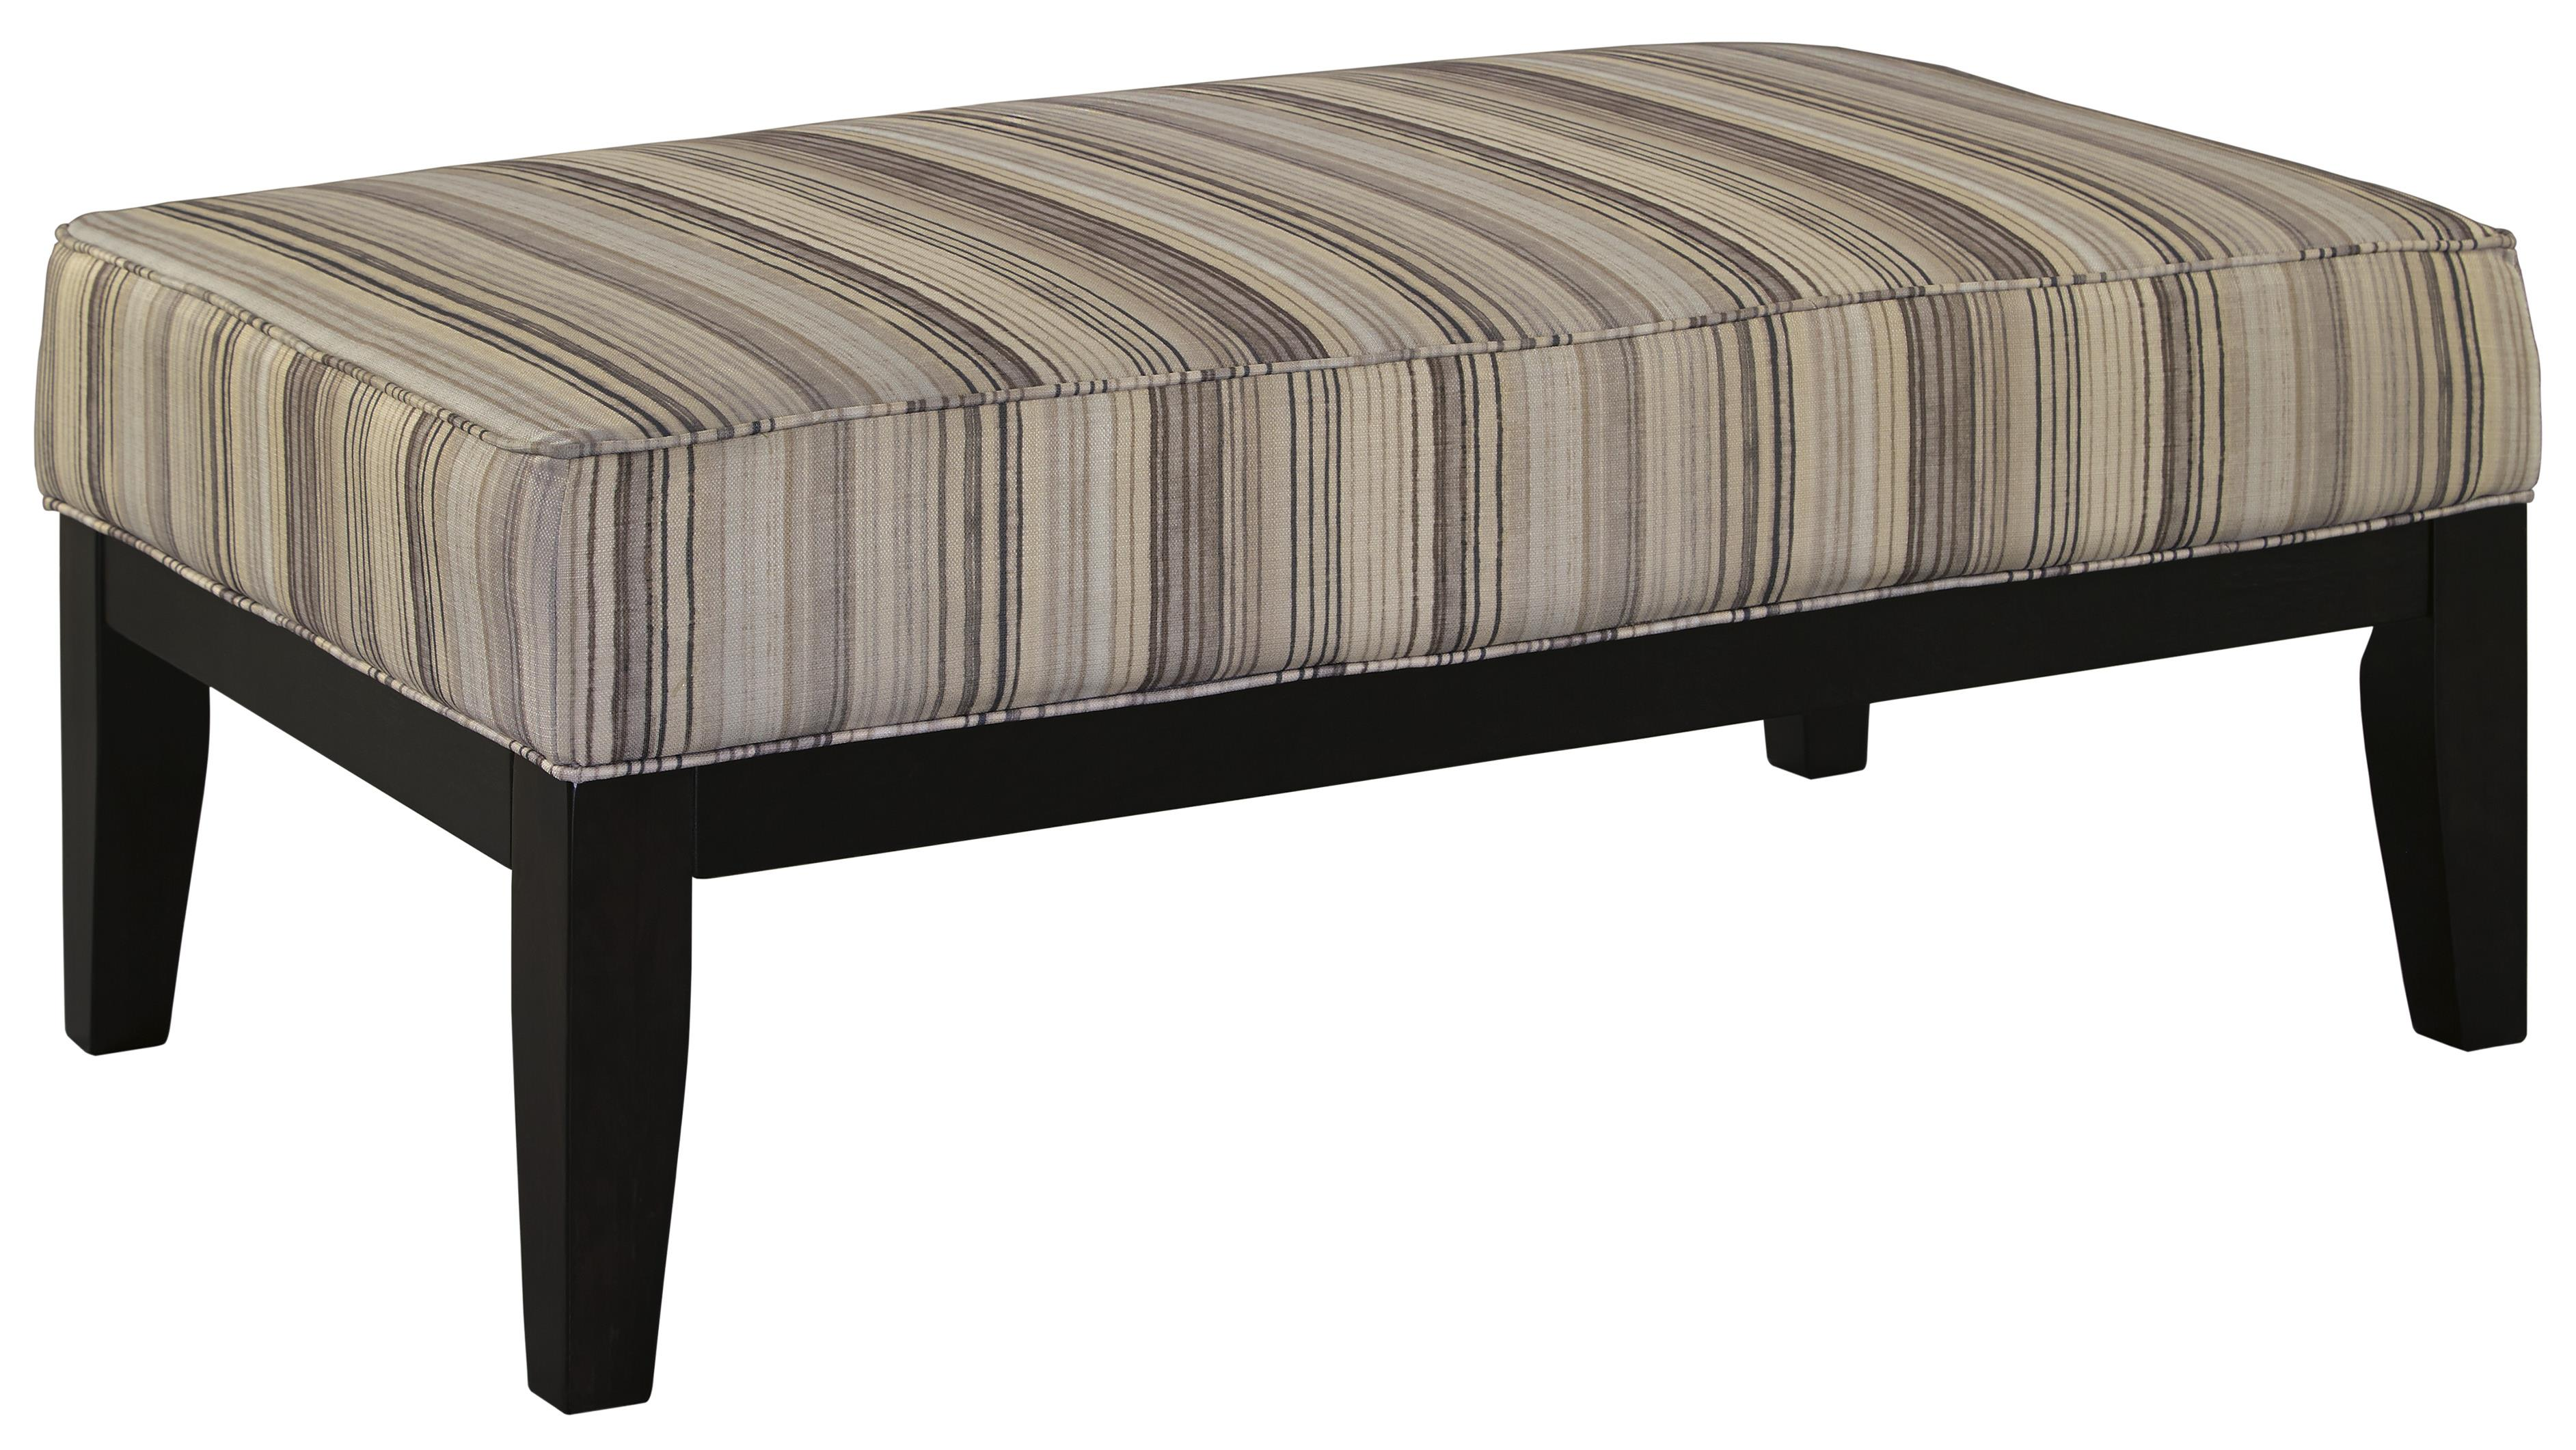 Signature Design by Ashley Melaya Oversized Accent Ottoman - Item Number: 4780008